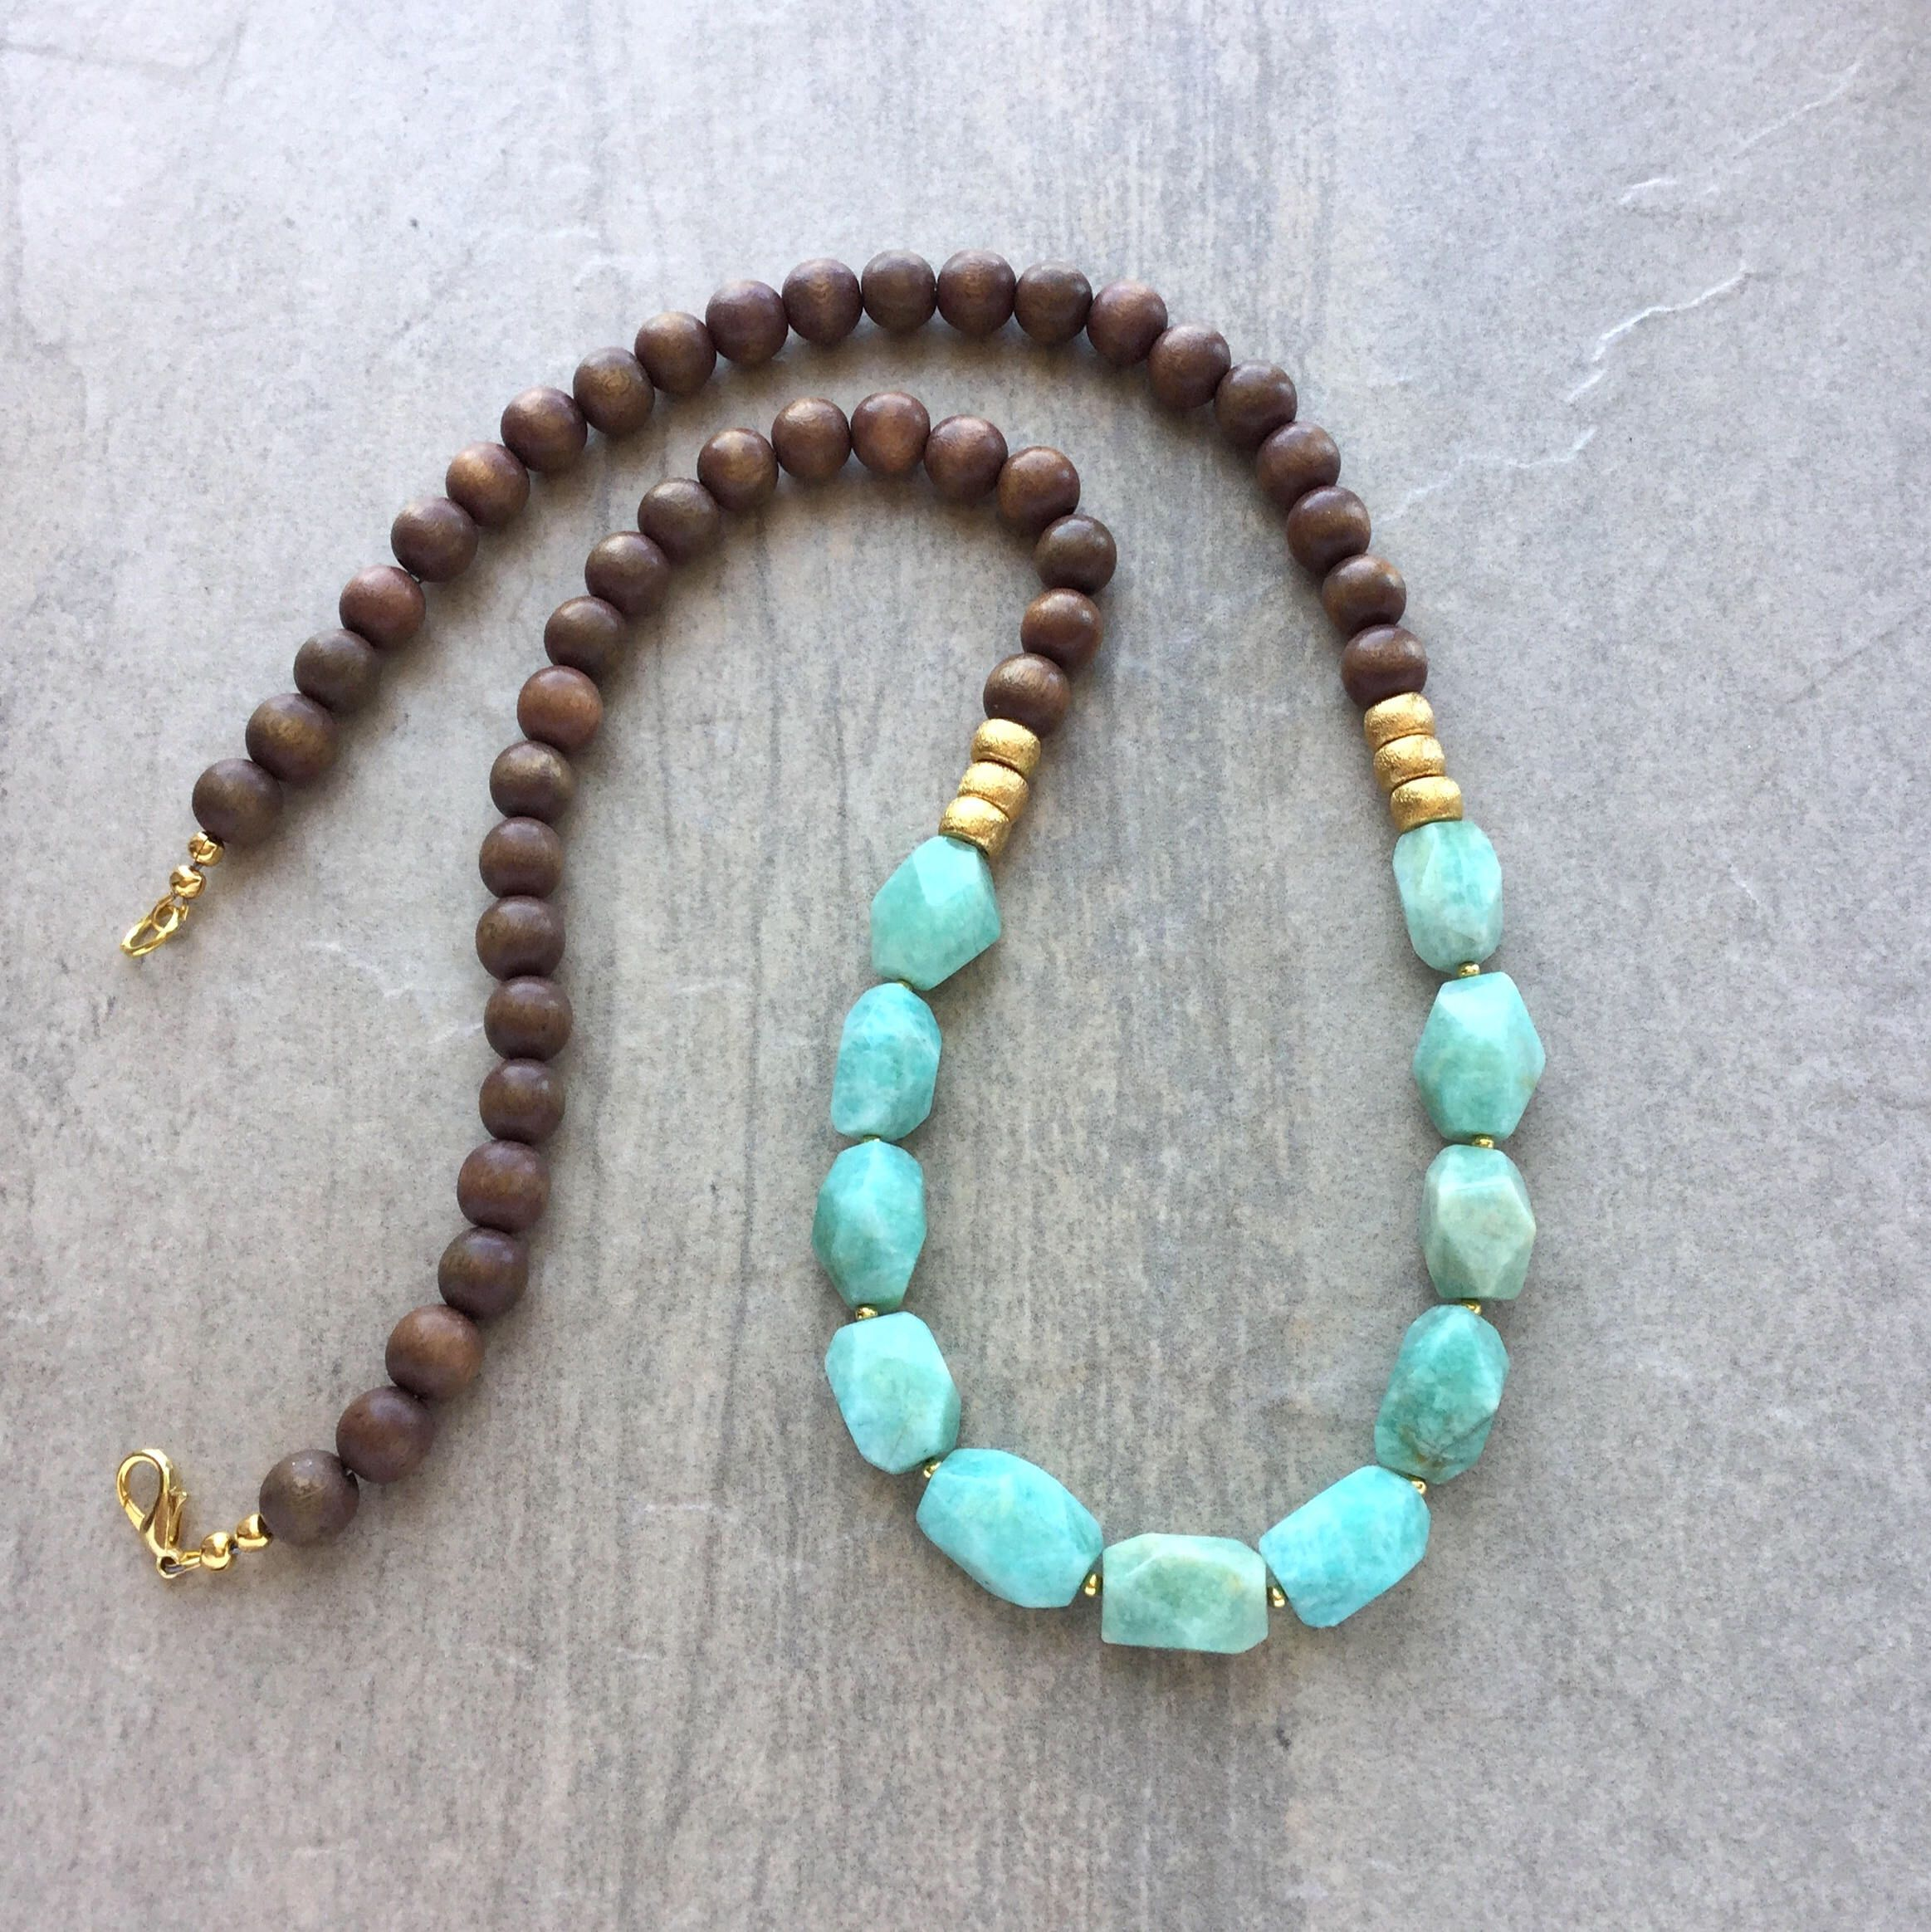 arts amazonite moonstone healing necklace munay product